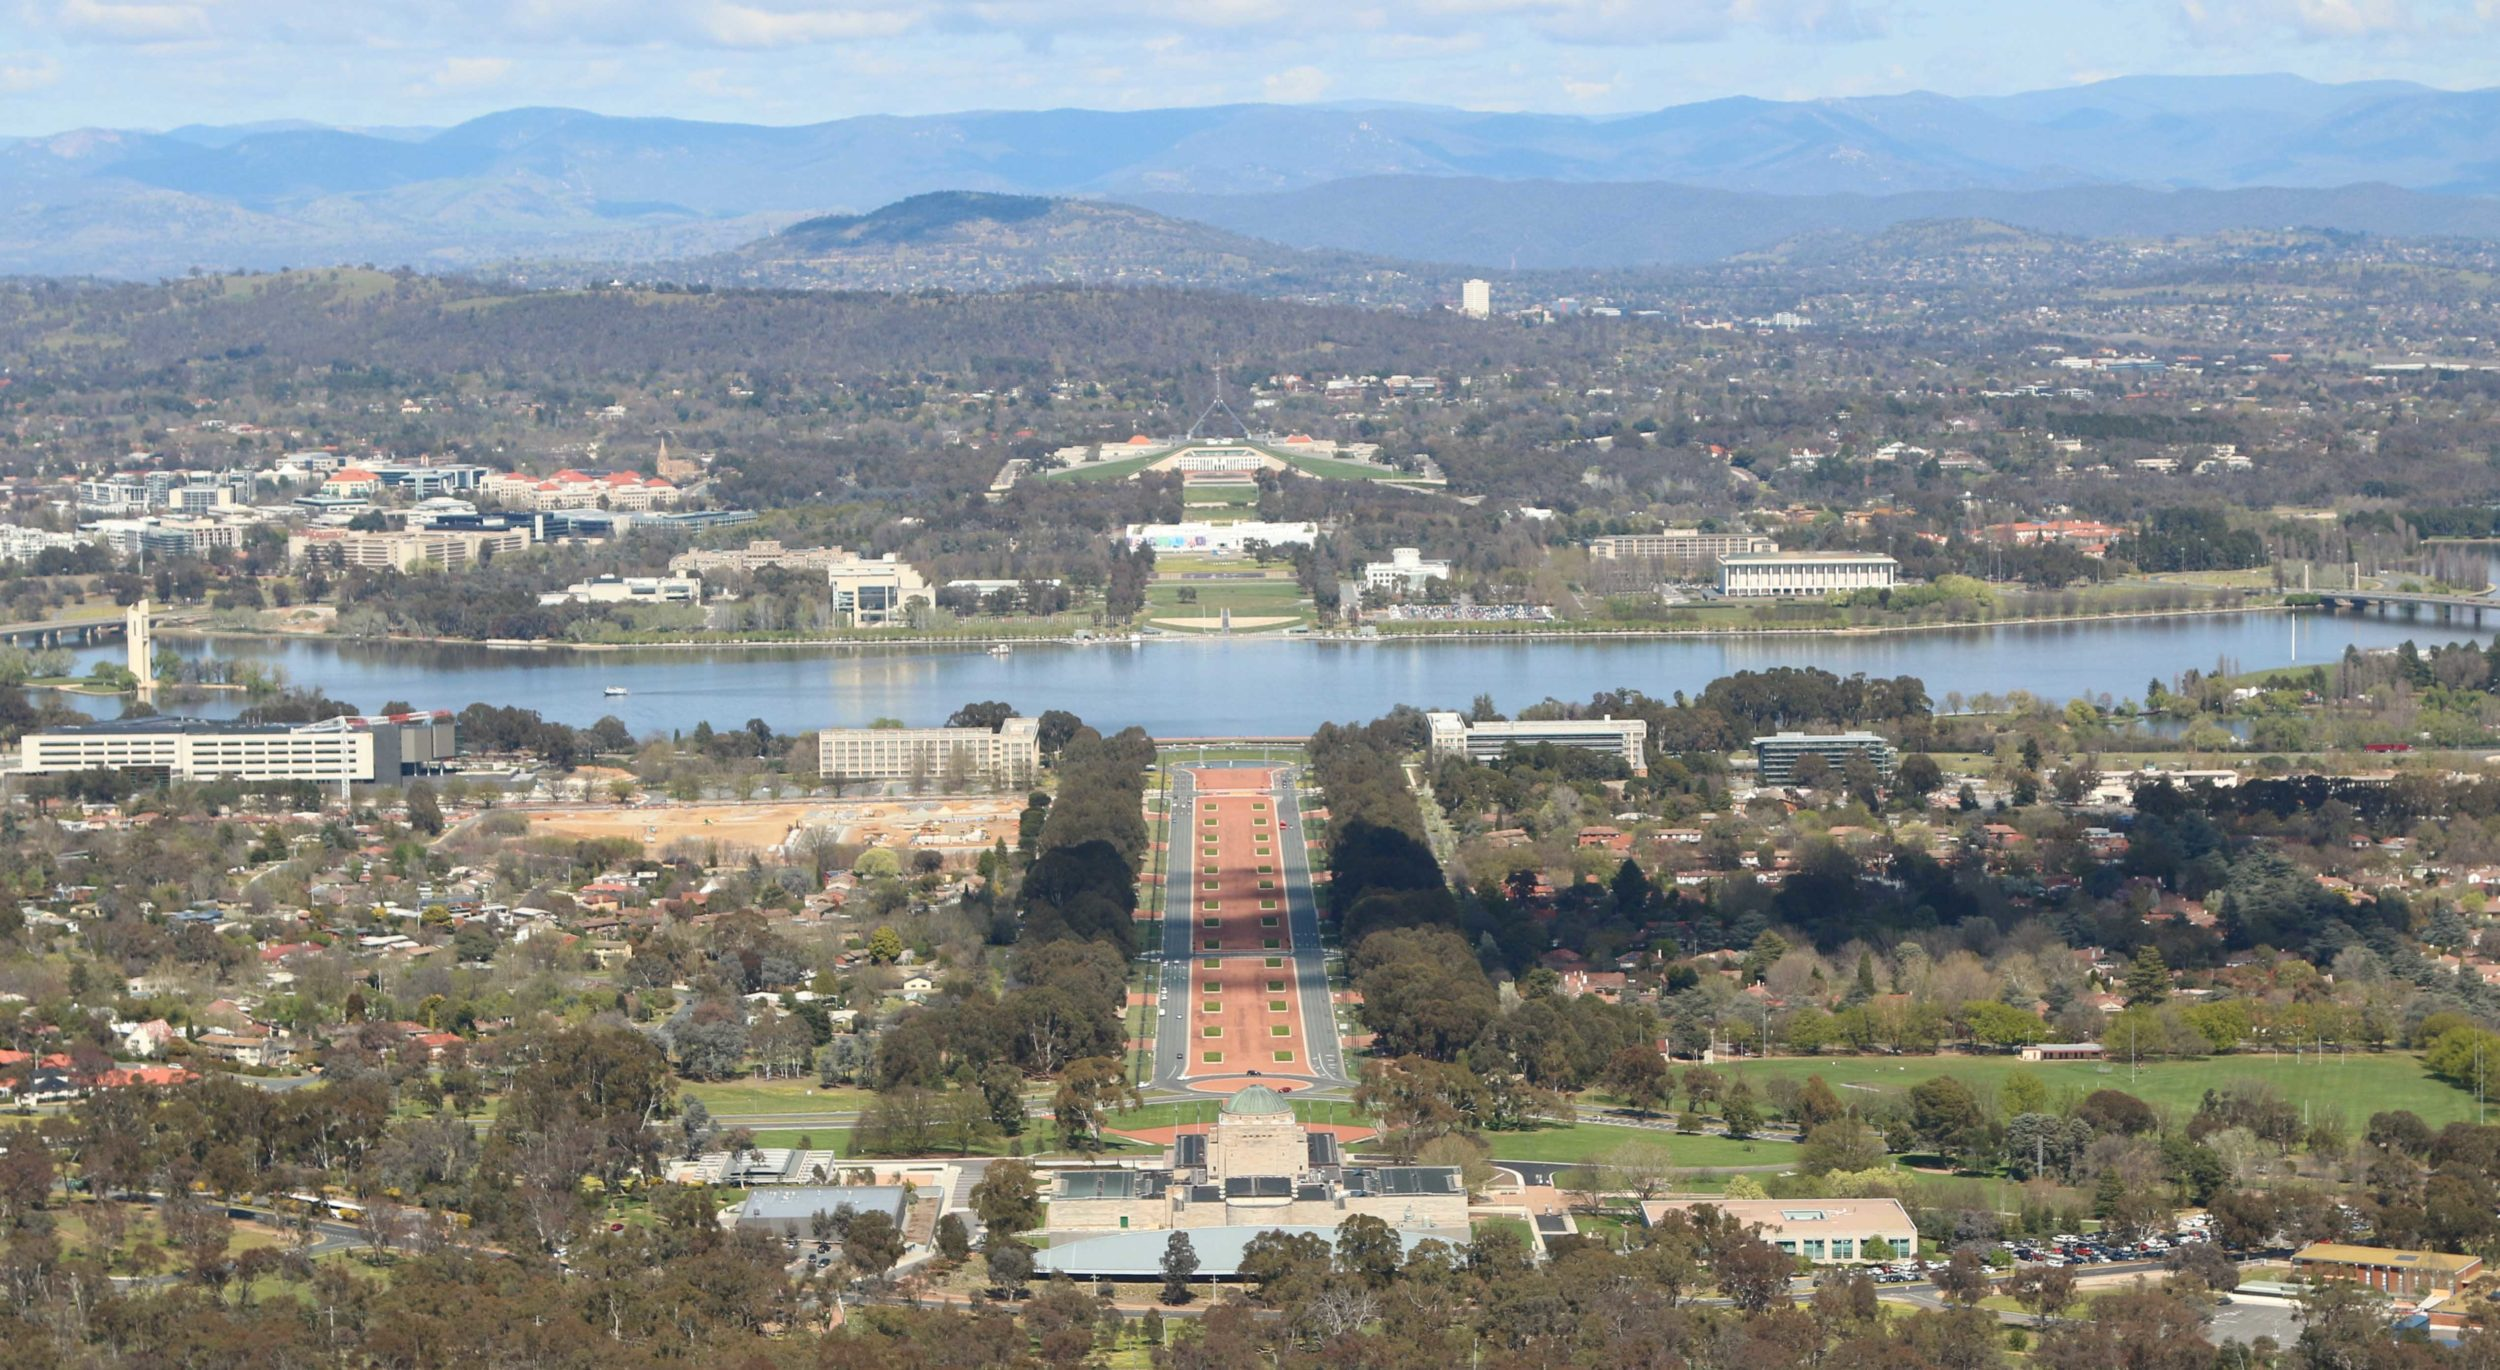 Via from Mt Ainslie over Canberra, with the Australian War Memorial and Parliment House